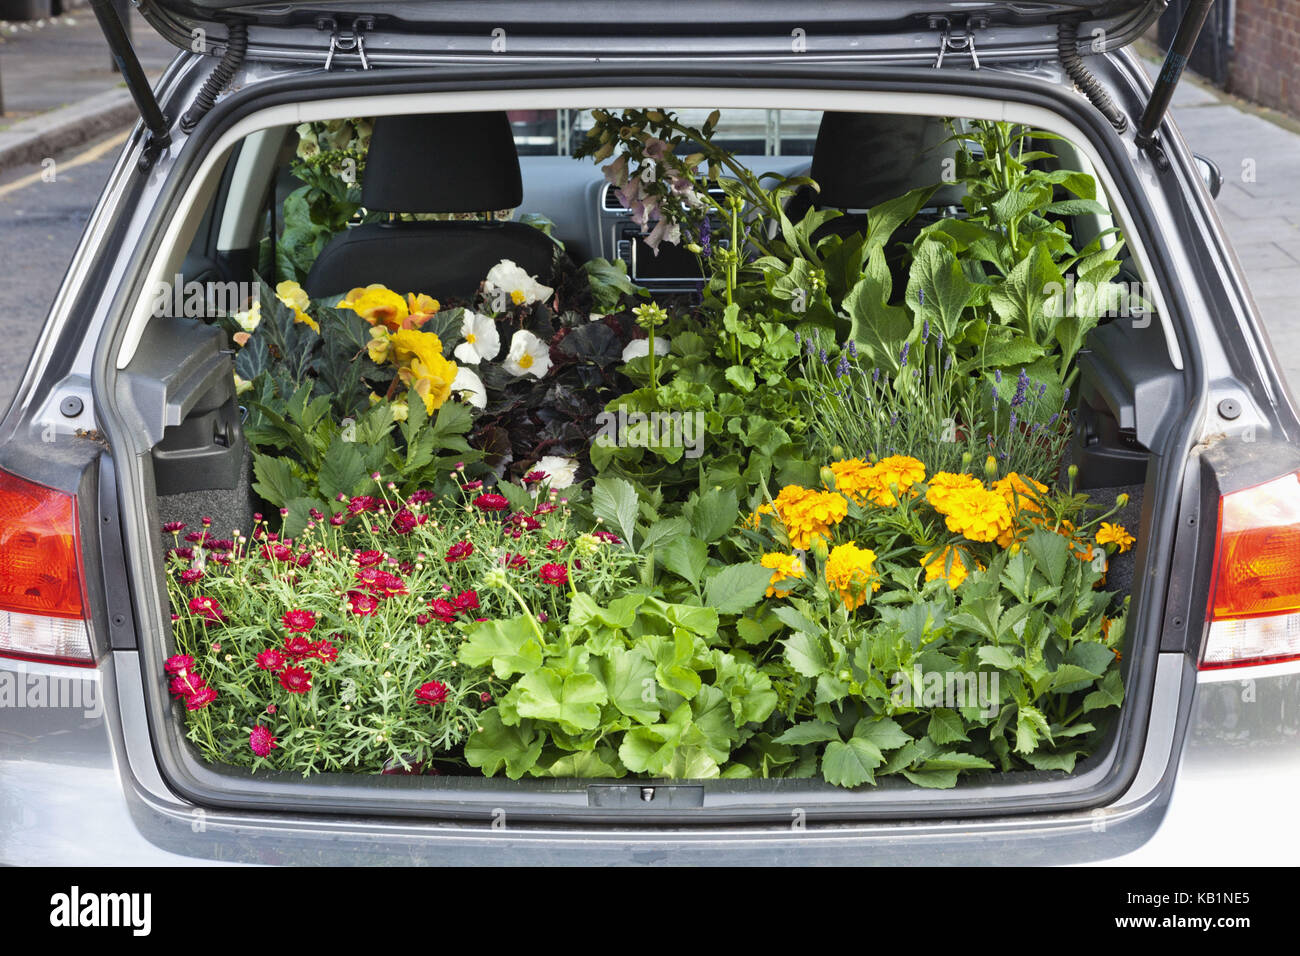 England, London, Columbia Road Flower Market, car, boot, completely with plants, - Stock Image